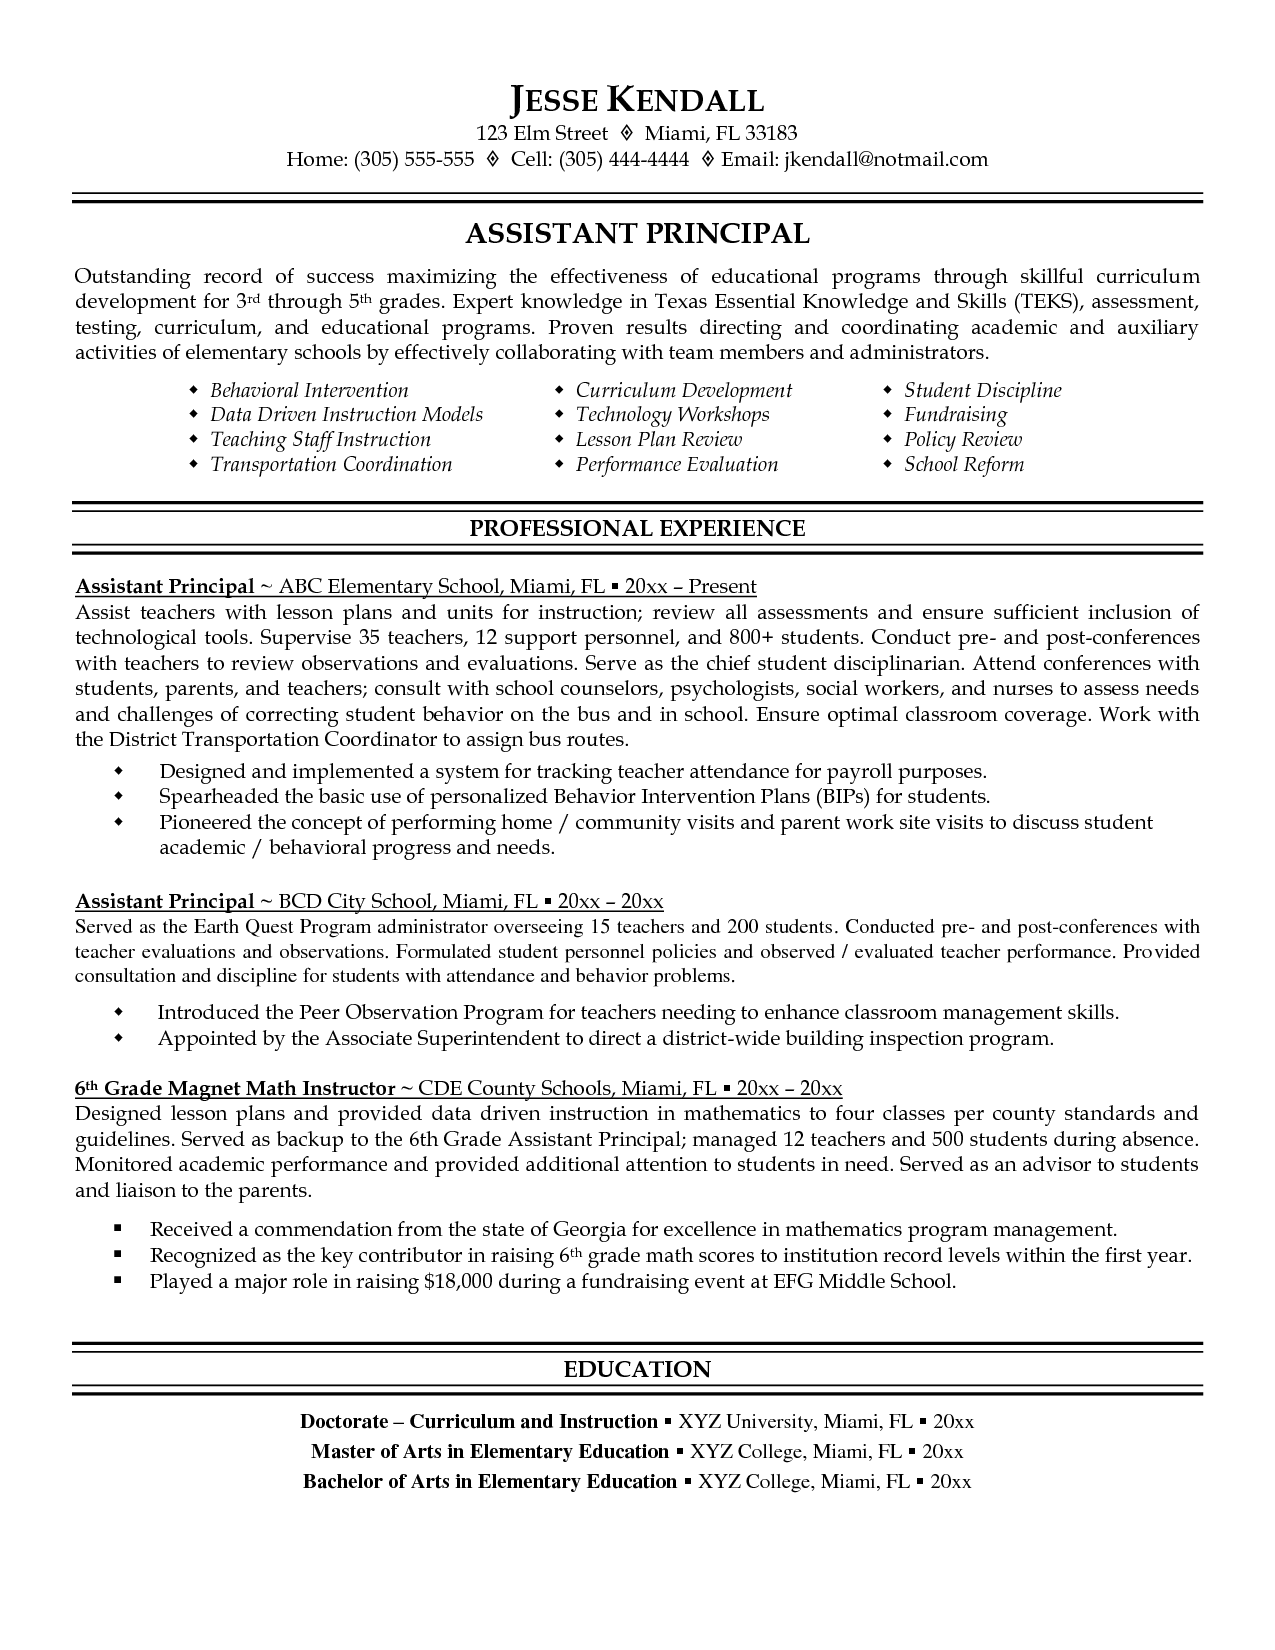 resume and vice principal assistant principal resume sample resume